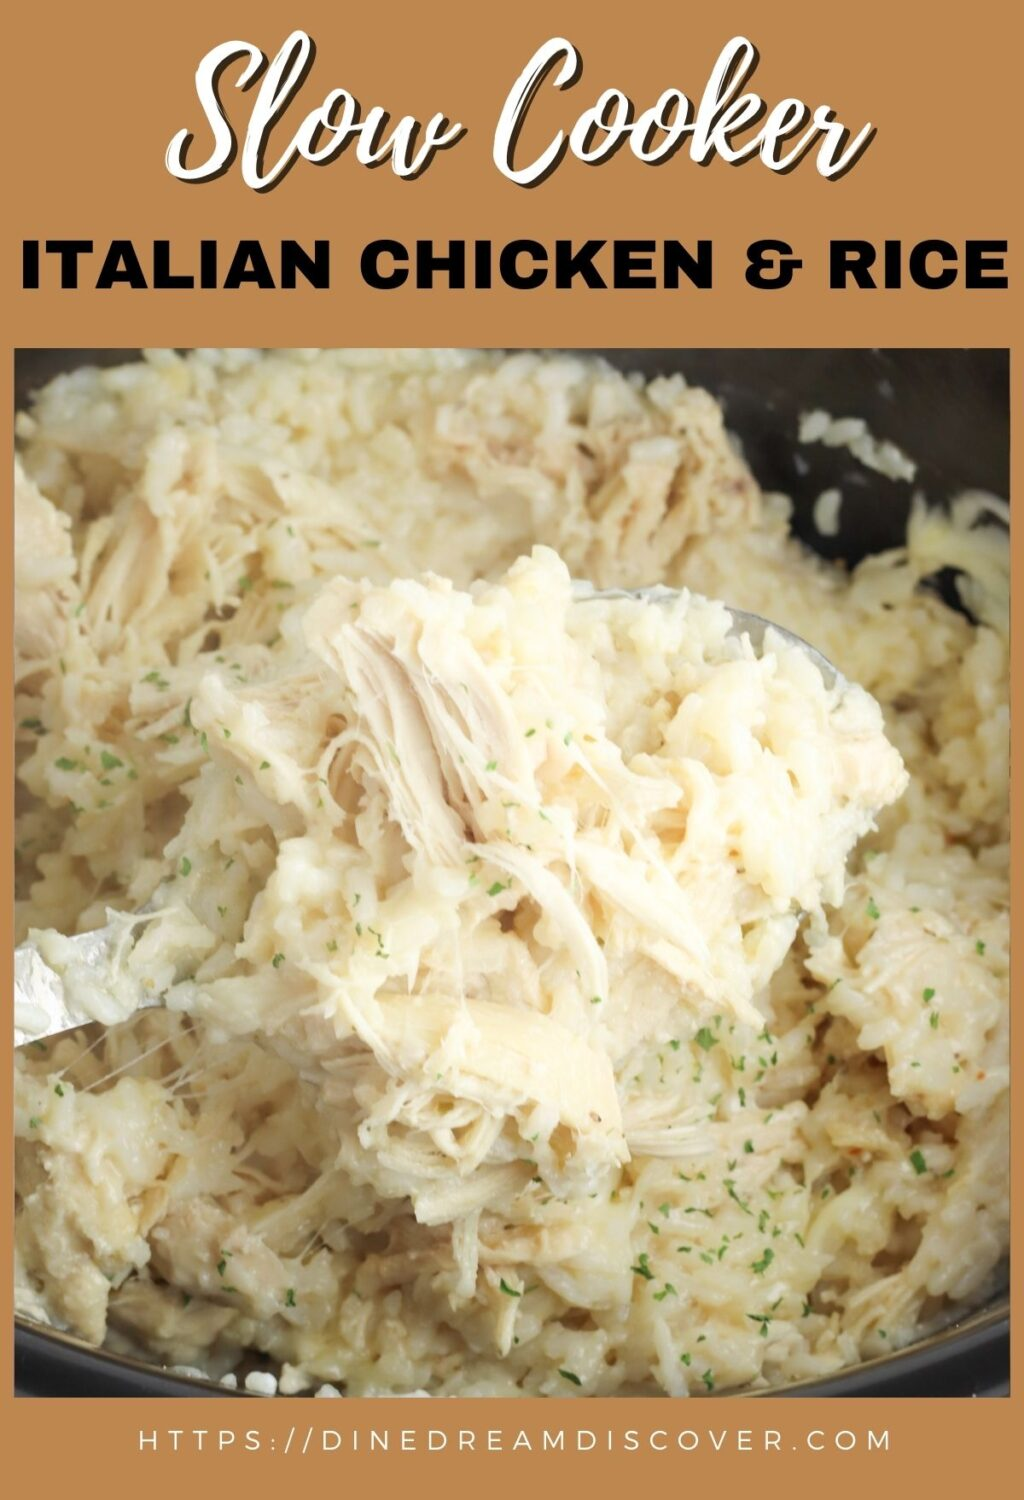 Slow Cooker Italian Chicken and Rice Recipe